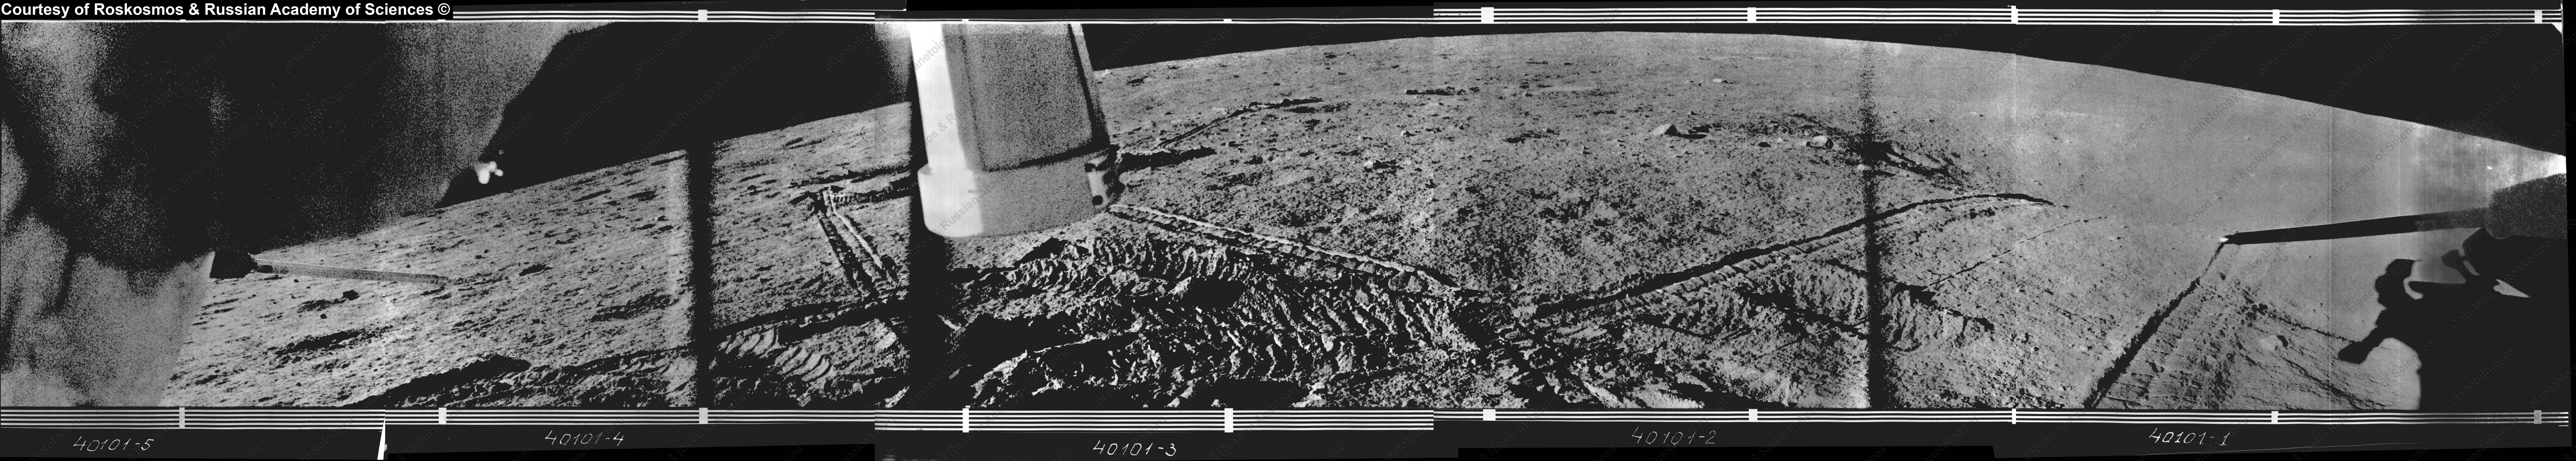 Lunokhod 1 (page 3) - Pics about space